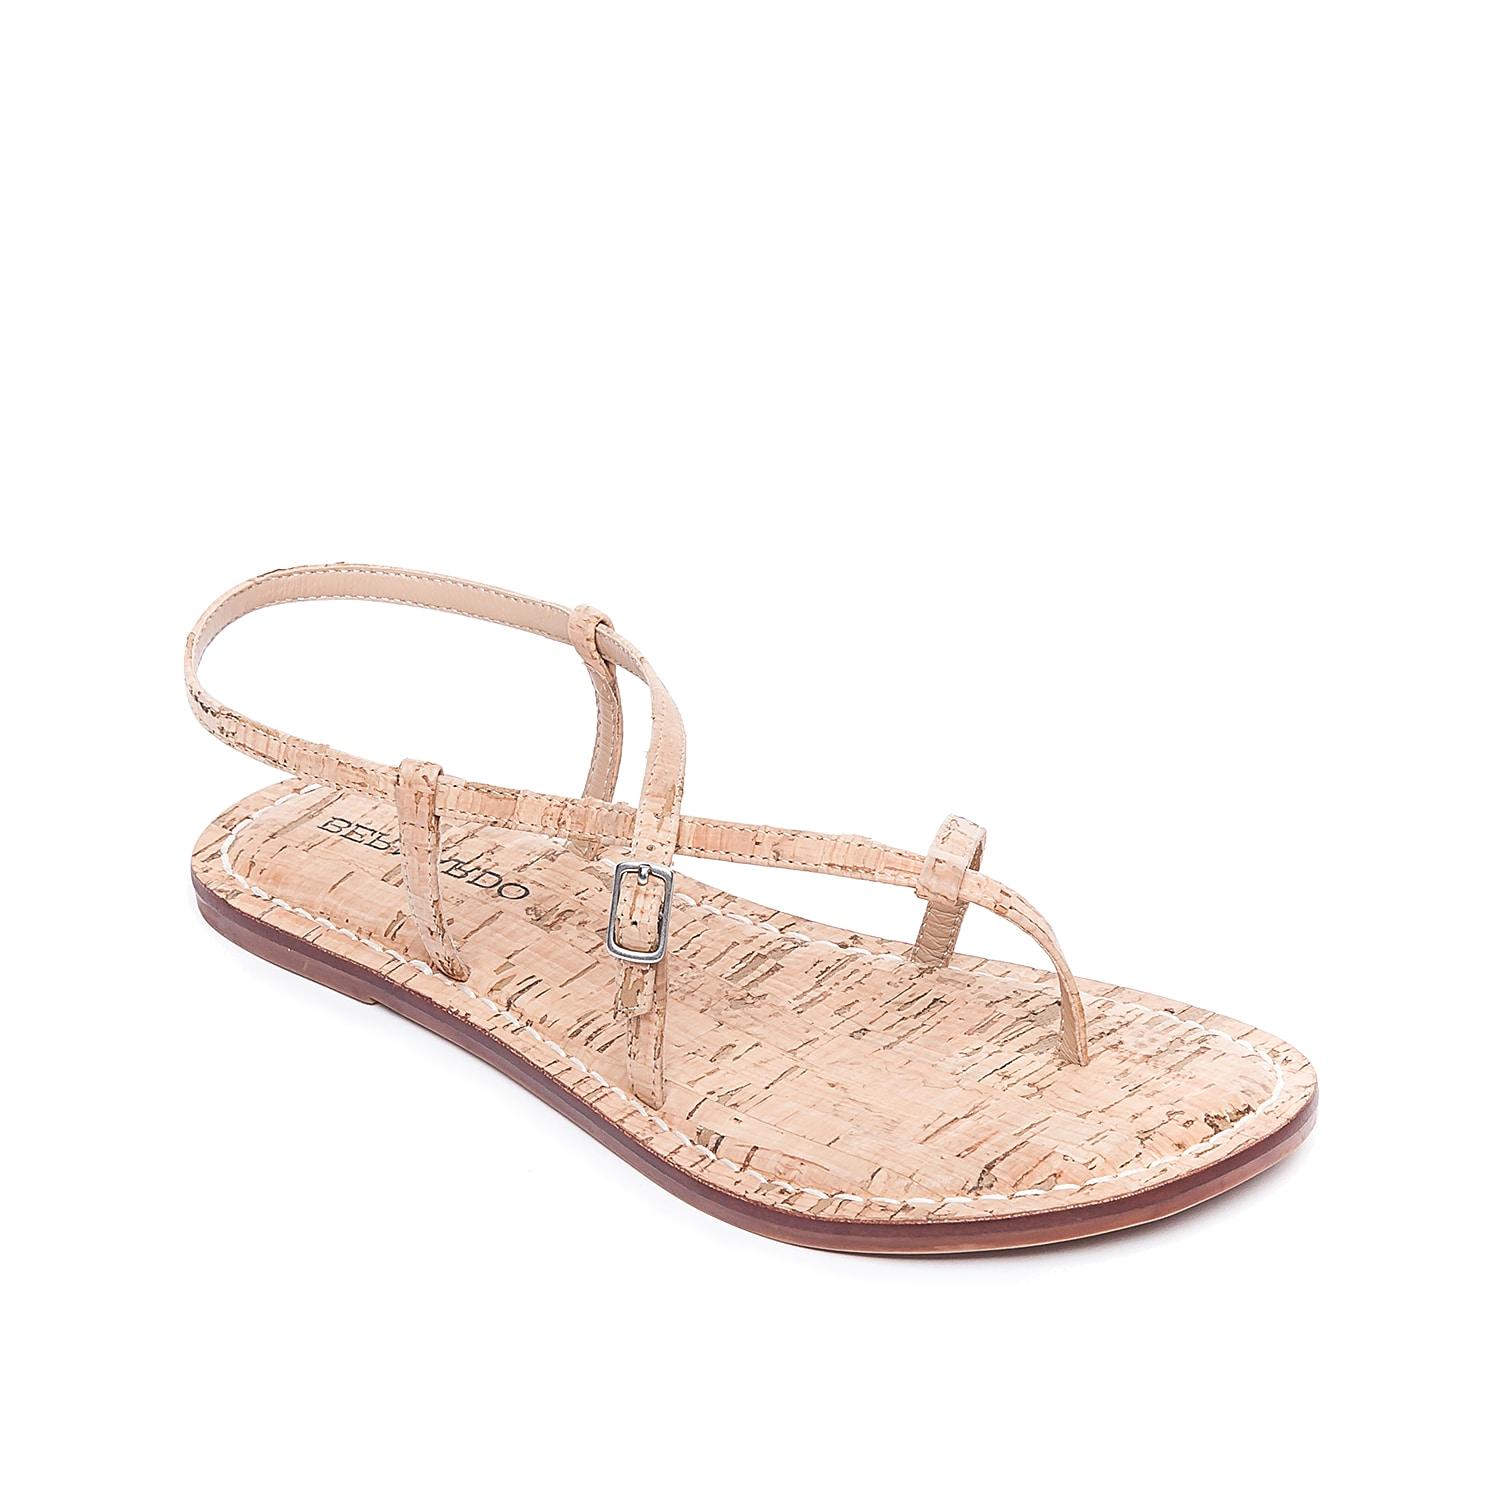 Don\\\'t underestimate the simple look of the Lexi sandal from Bernardo. This luxe pair is fashioned with thin straps and a lightly padded footbed for easygoing steps!